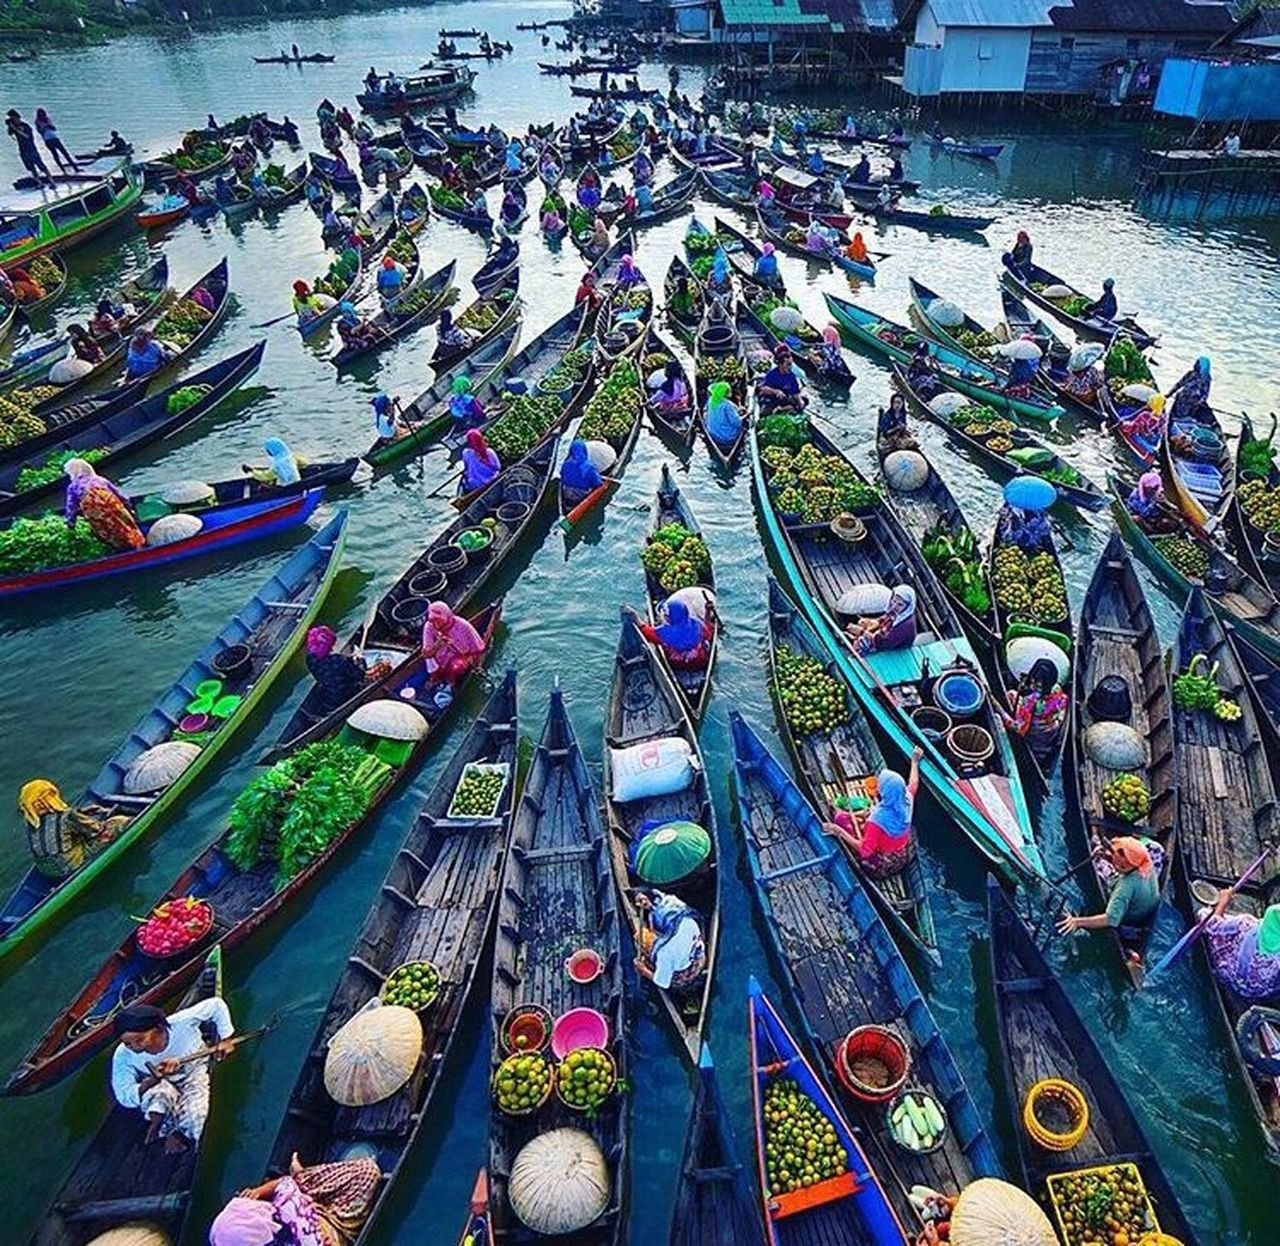 nautical vessel, high angle view, water, transportation, moored, day, river, outdoors, mode of transport, large group of objects, multi colored, harbor, gondola - traditional boat, no people